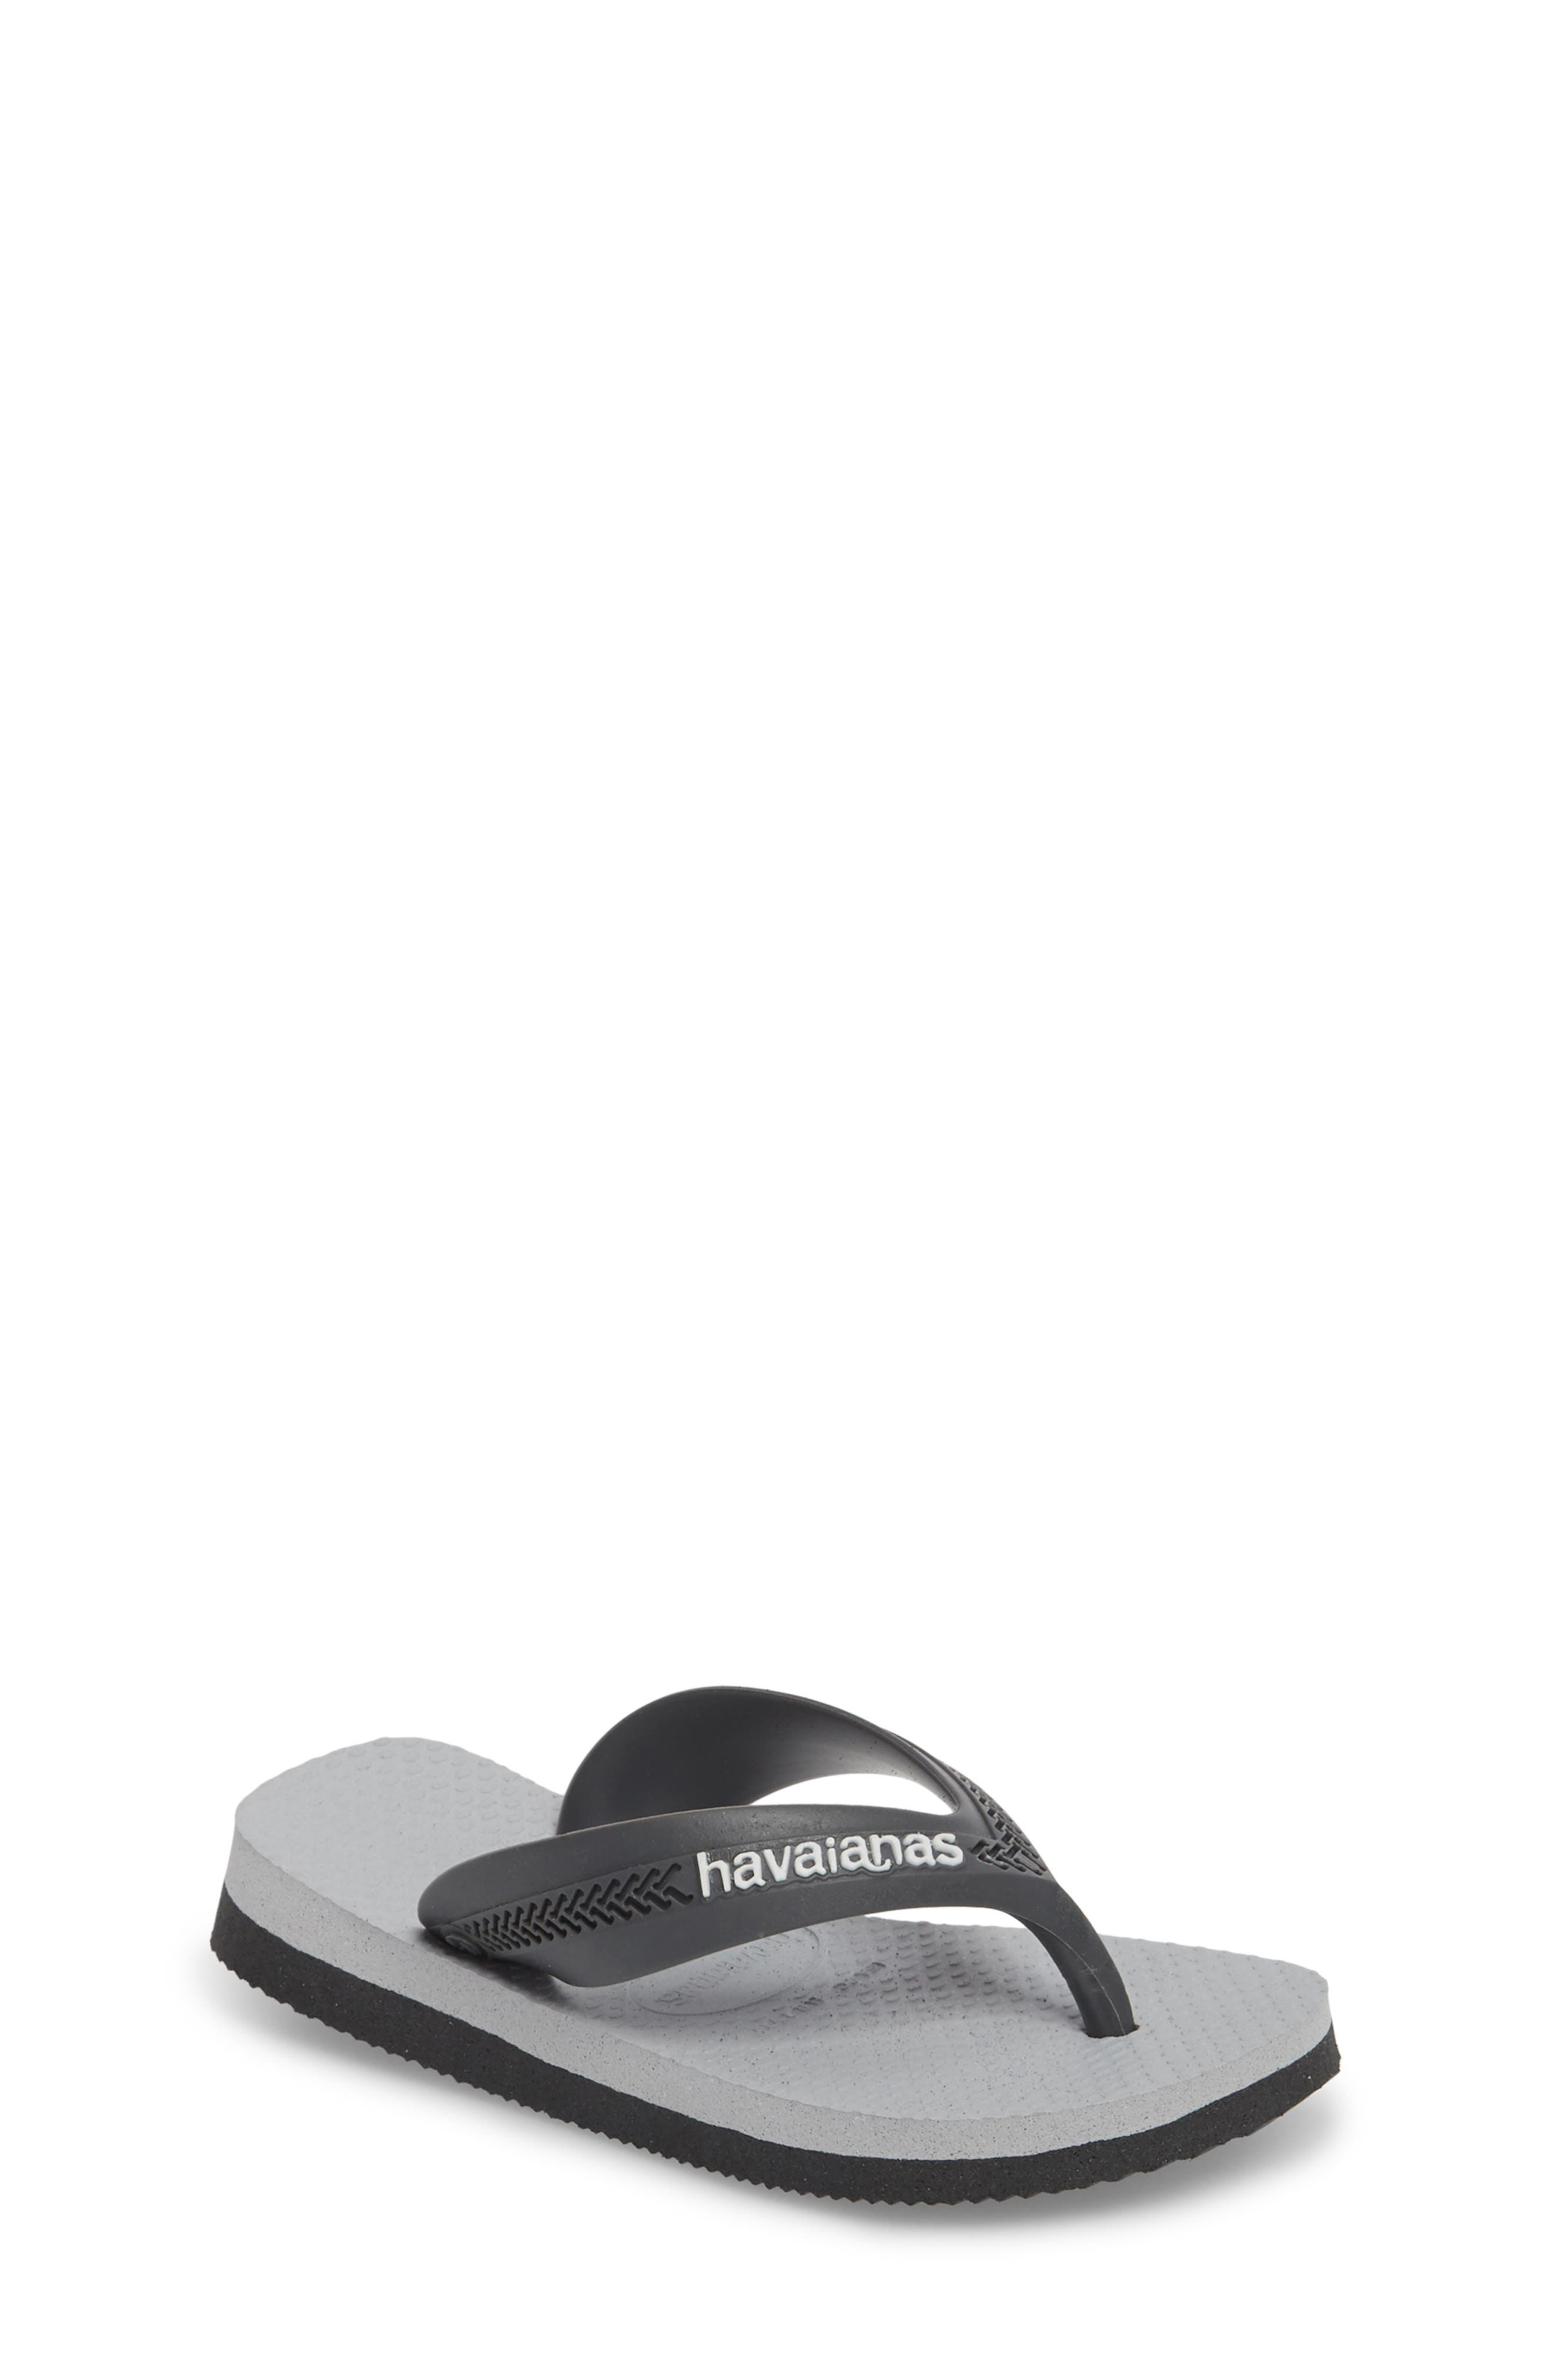 Alternate Image 1 Selected - Havaianas 'Max' Flip-Flop (Toddler & Little Kid)